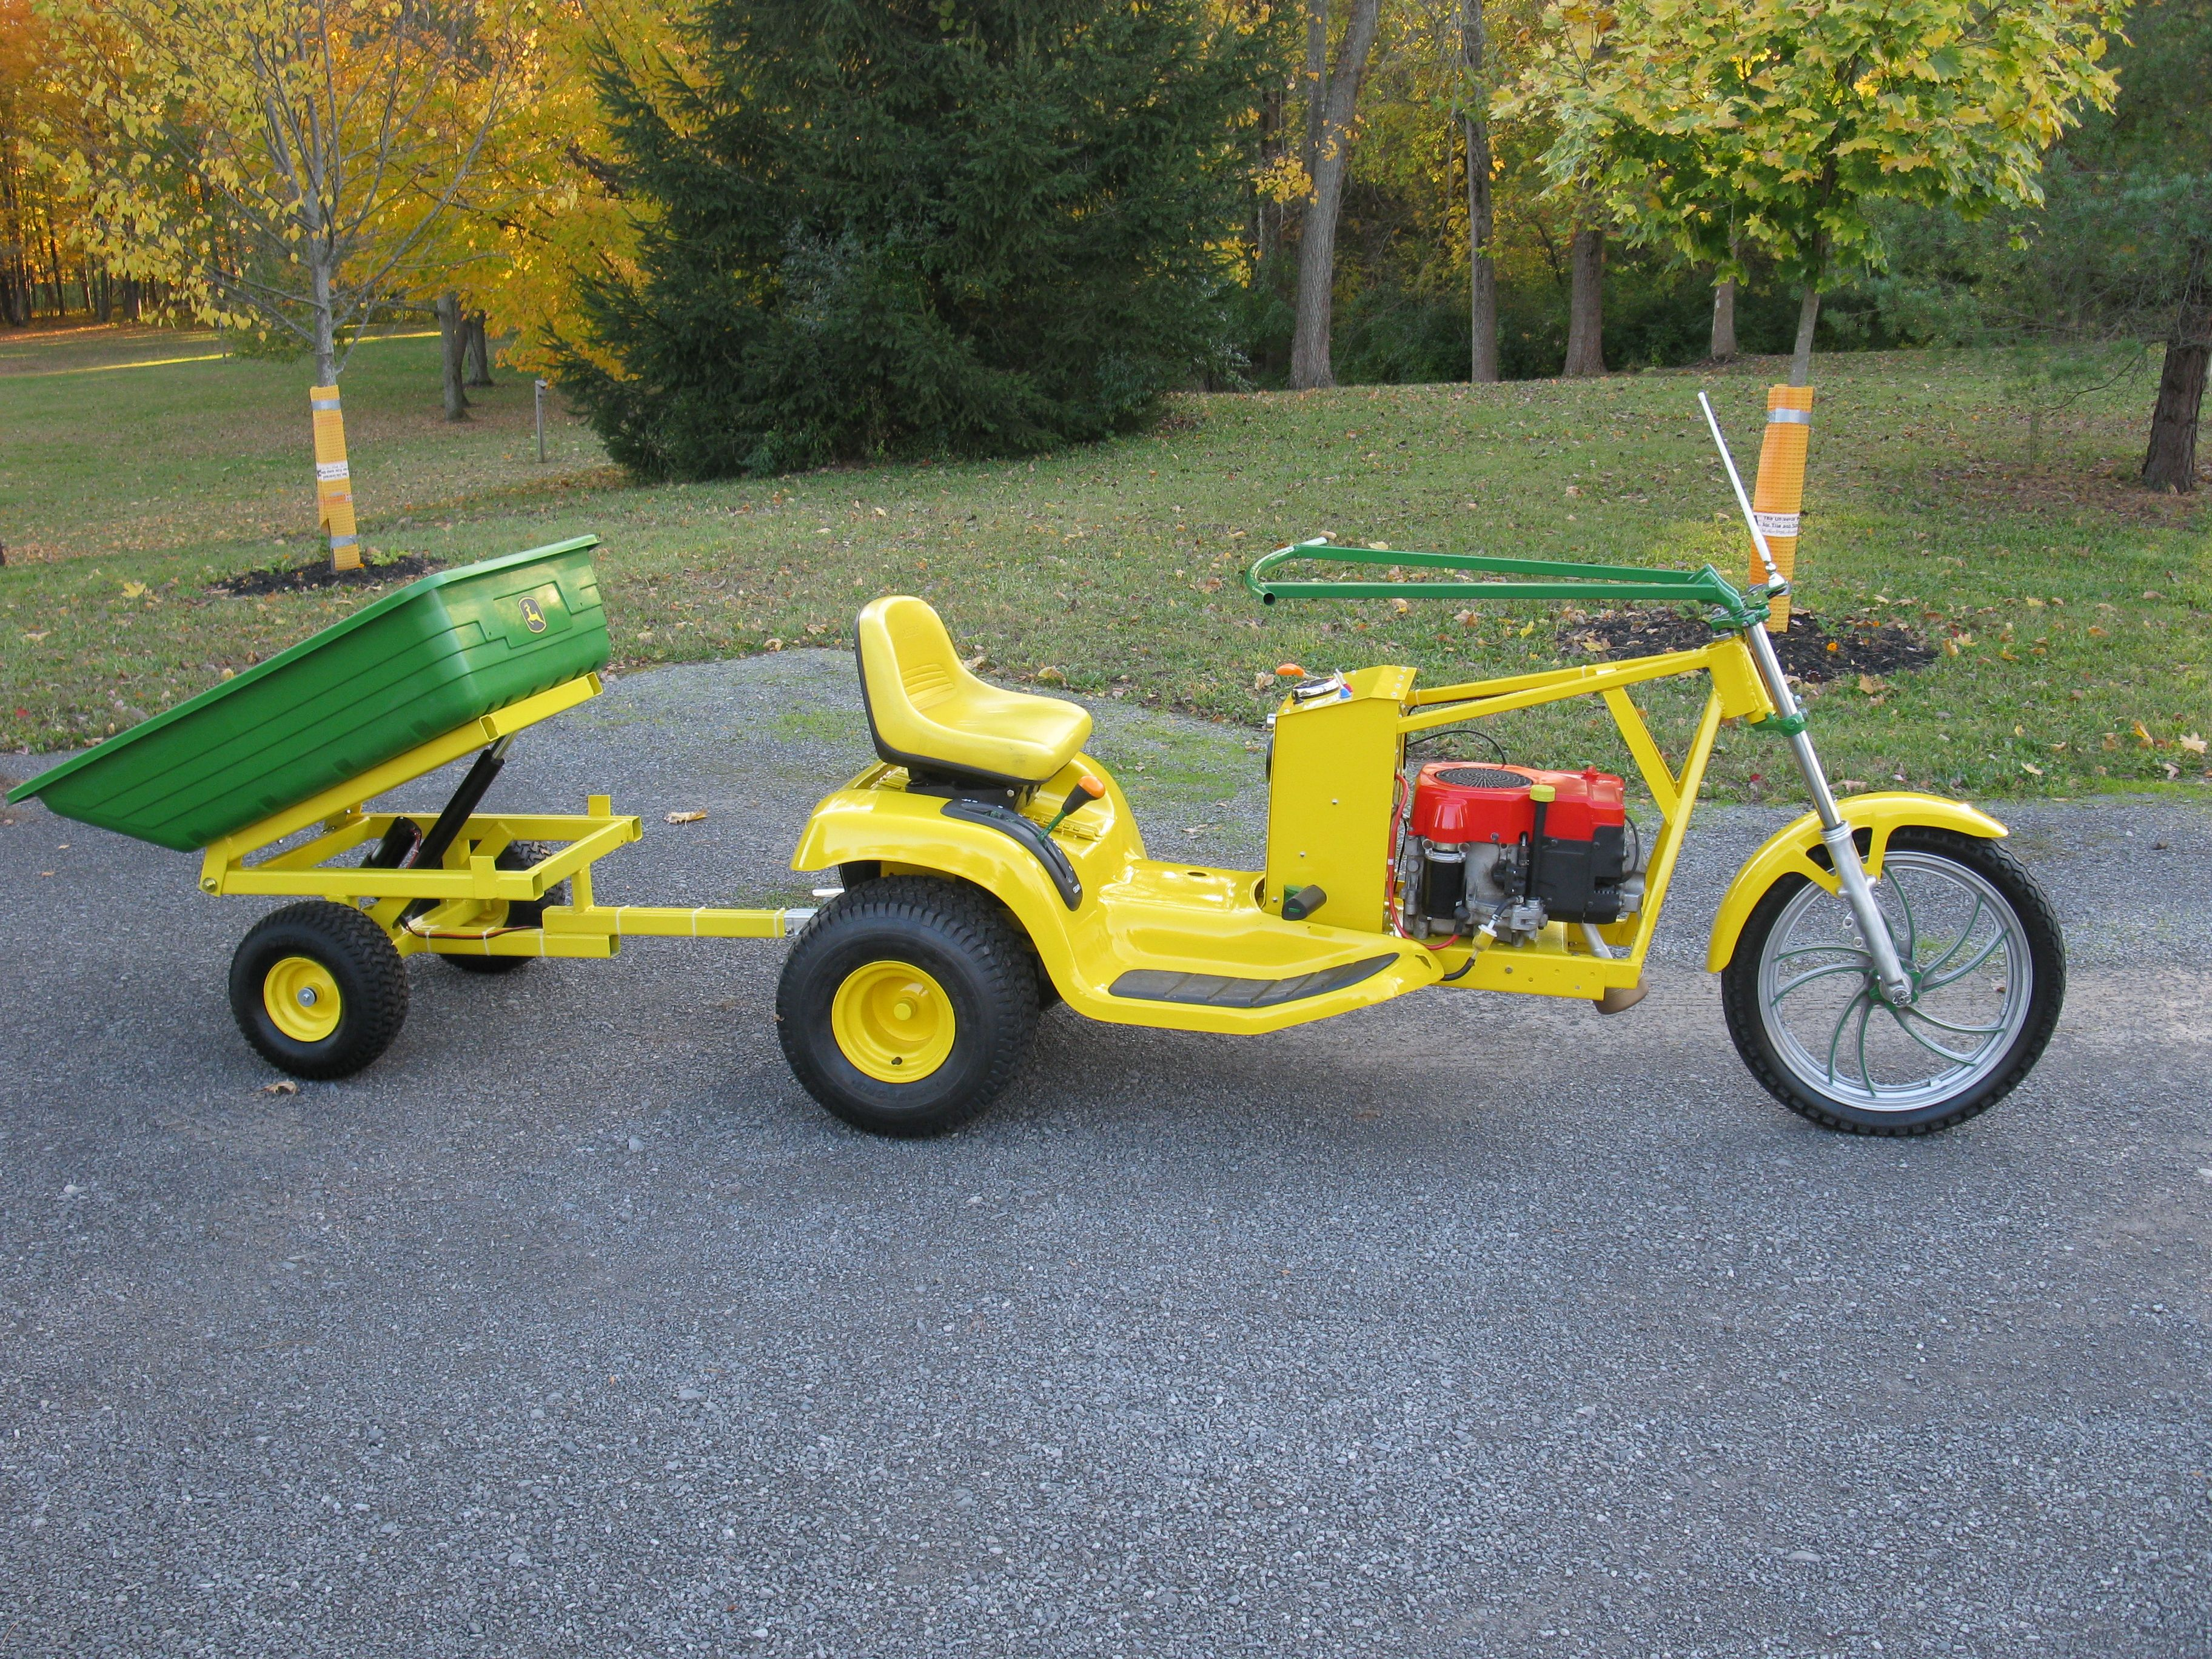 Gardening buggy with electric dump cart Lawn tractor